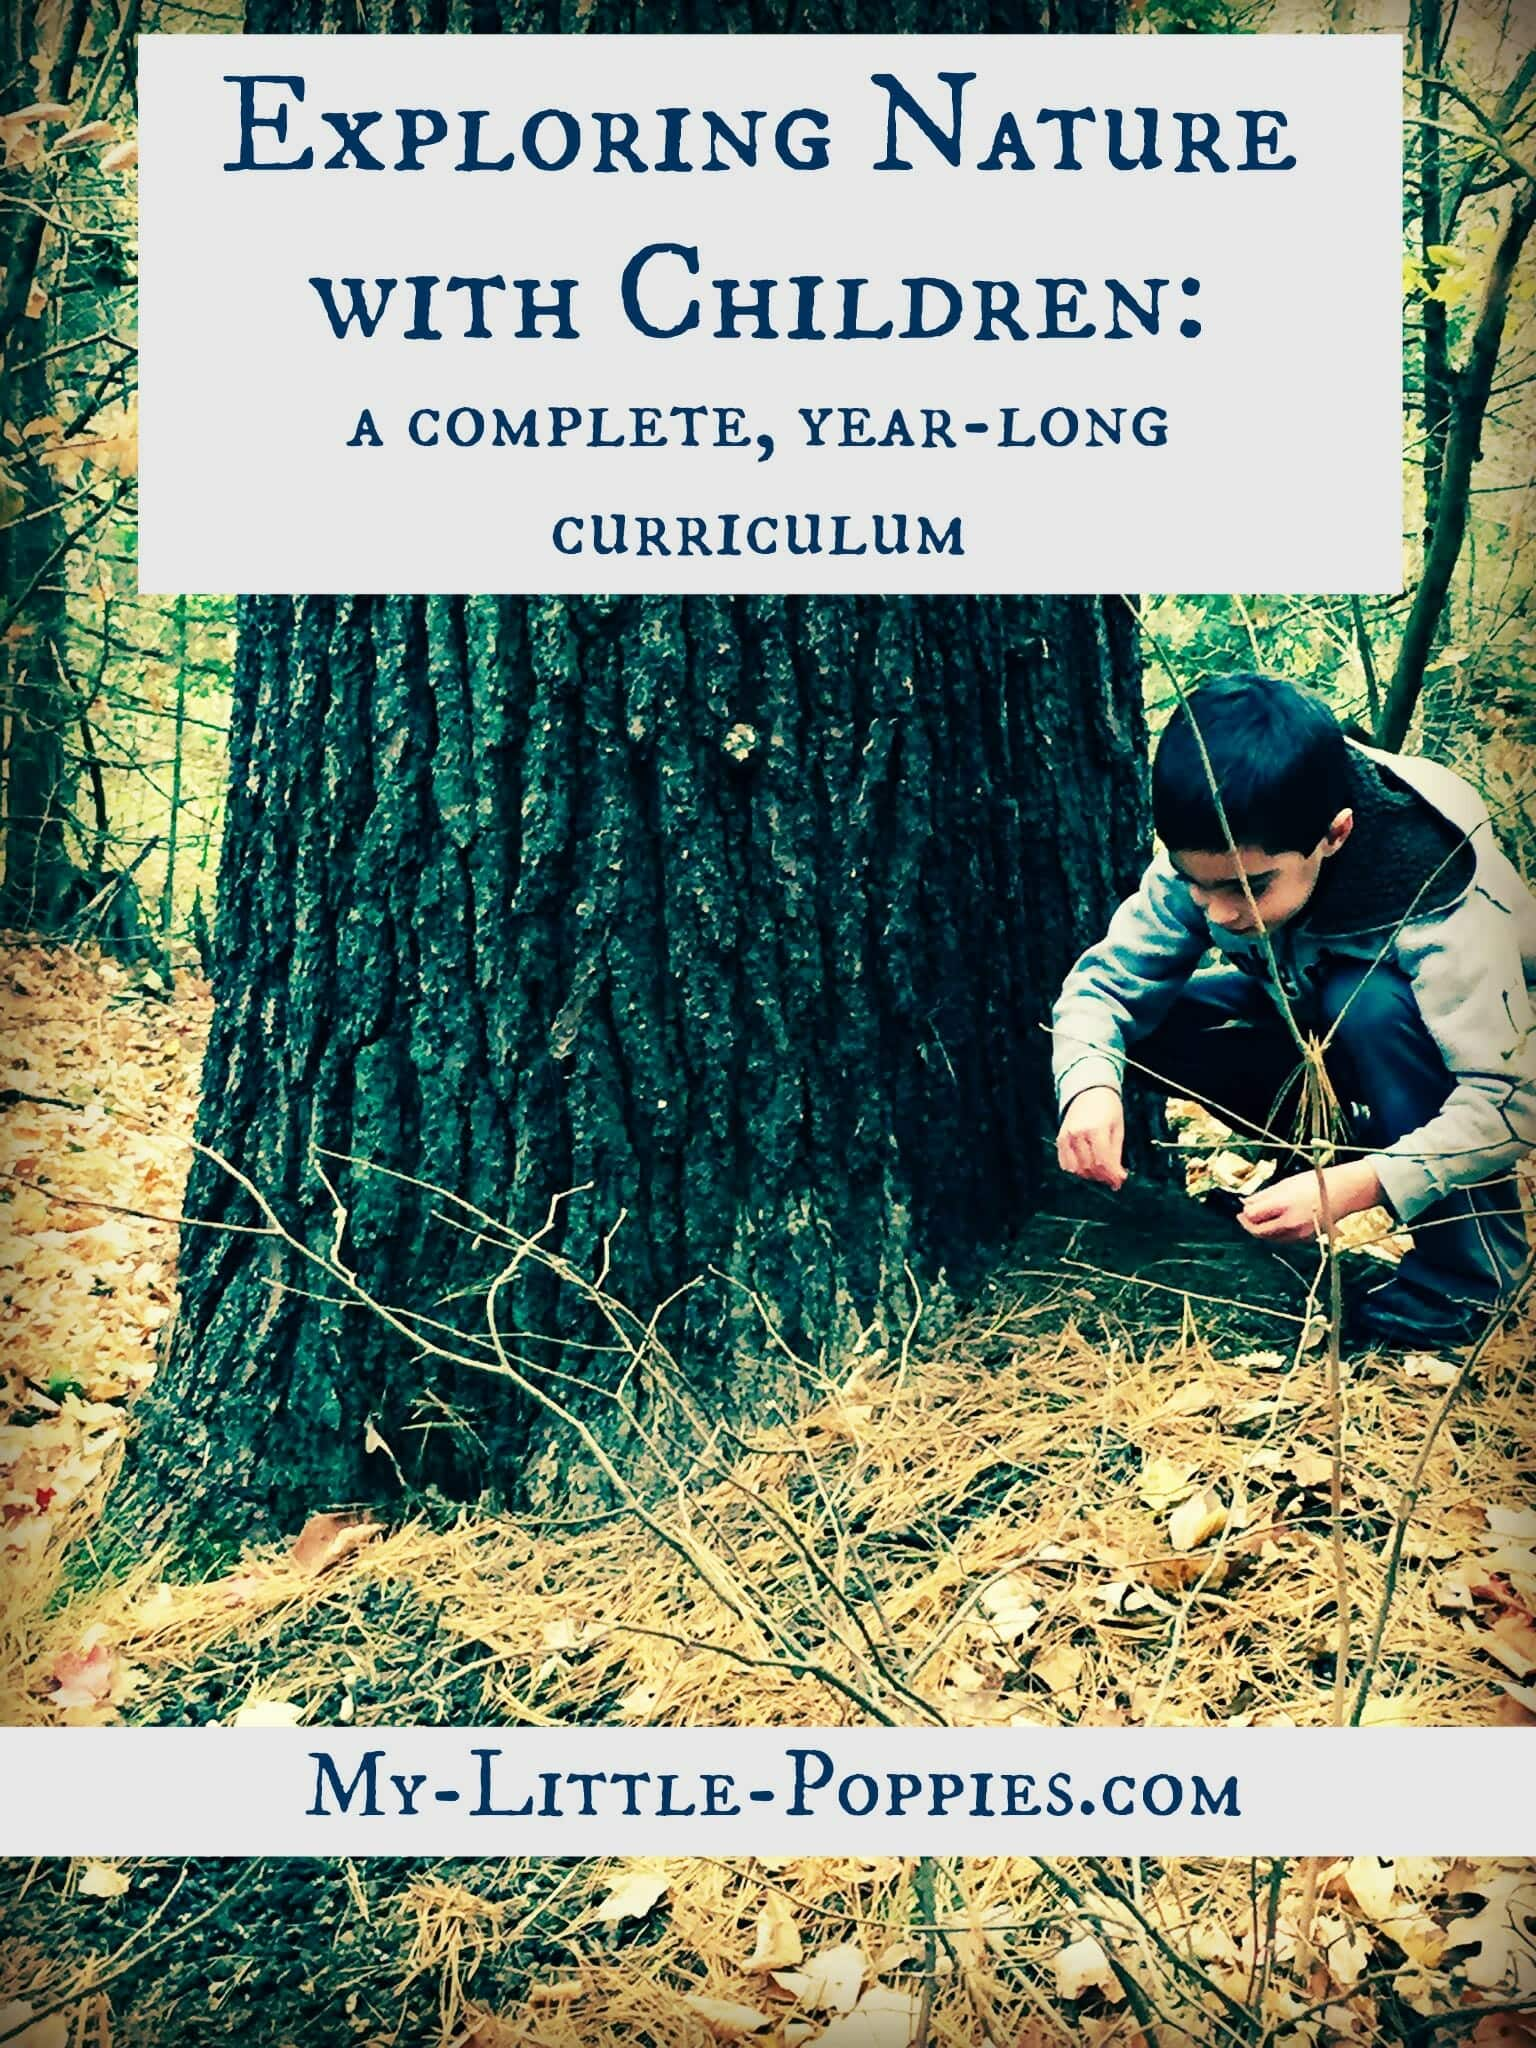 homeschool, homeschooling, education, nature study, charlotte mason, nature exploration, parenting